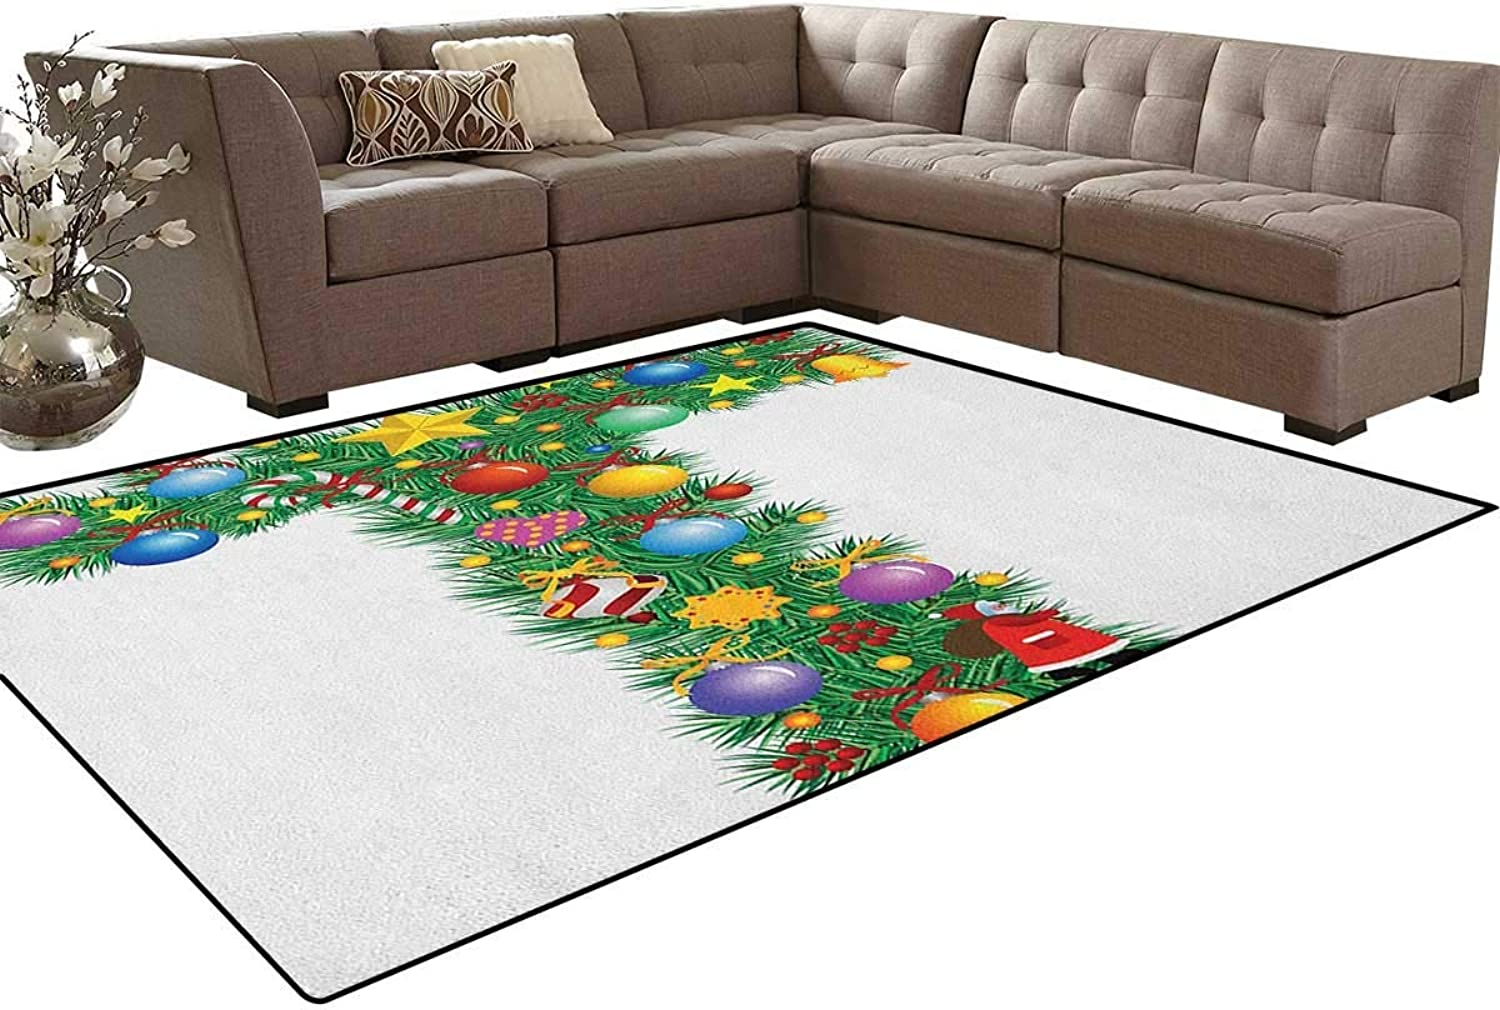 Winter Season Celebration with Traditional Festivity Items Holiday Themed Image Floor Mat Rug Indoor Front Door Kitchen and Living Room Bedroom Mats Rubber Non Slip